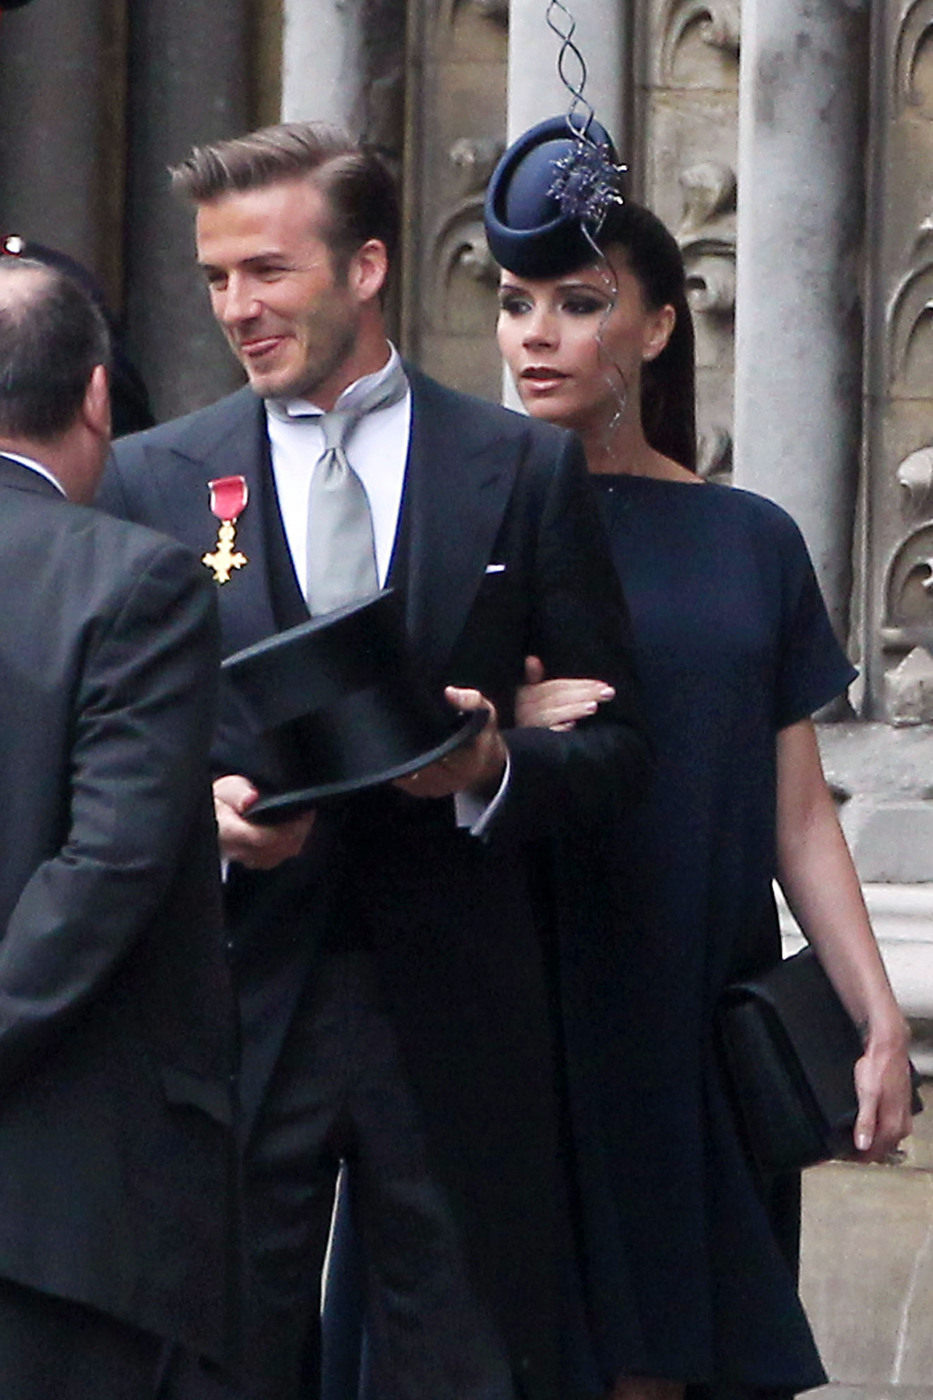 Everything About Pictures Of Victoria David Beckham At The Royal Wedding Prince William With Kate Middleton